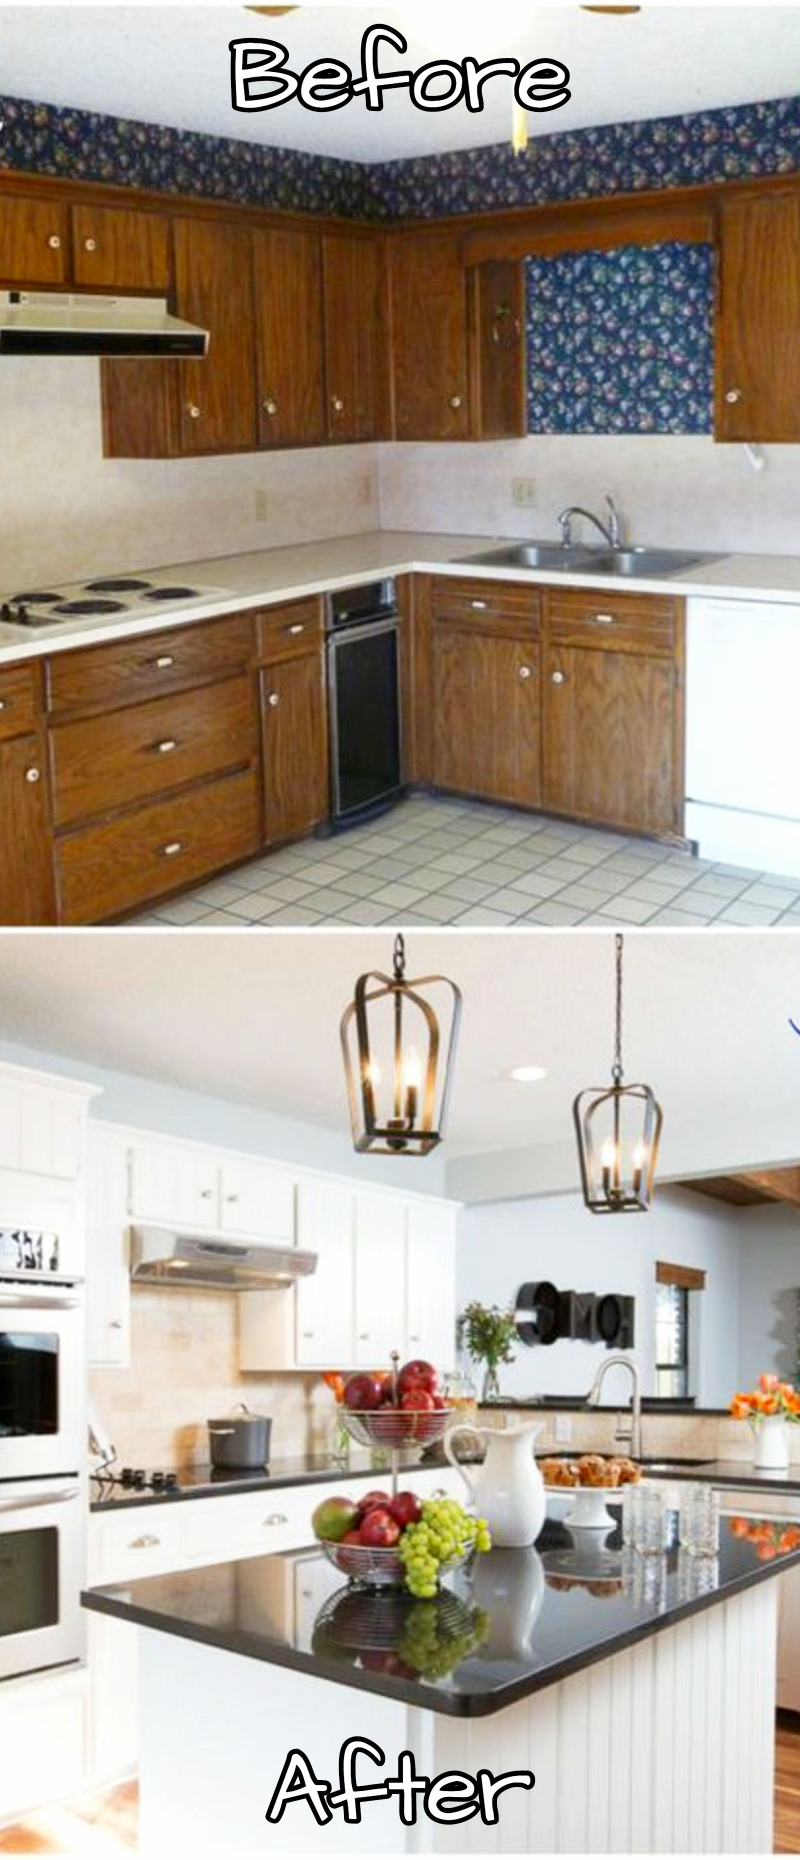 tiny kitchen remodel inexpensive countertops small remodels before and after pictures to drool over makeovers kitchens ideas kitchenideas